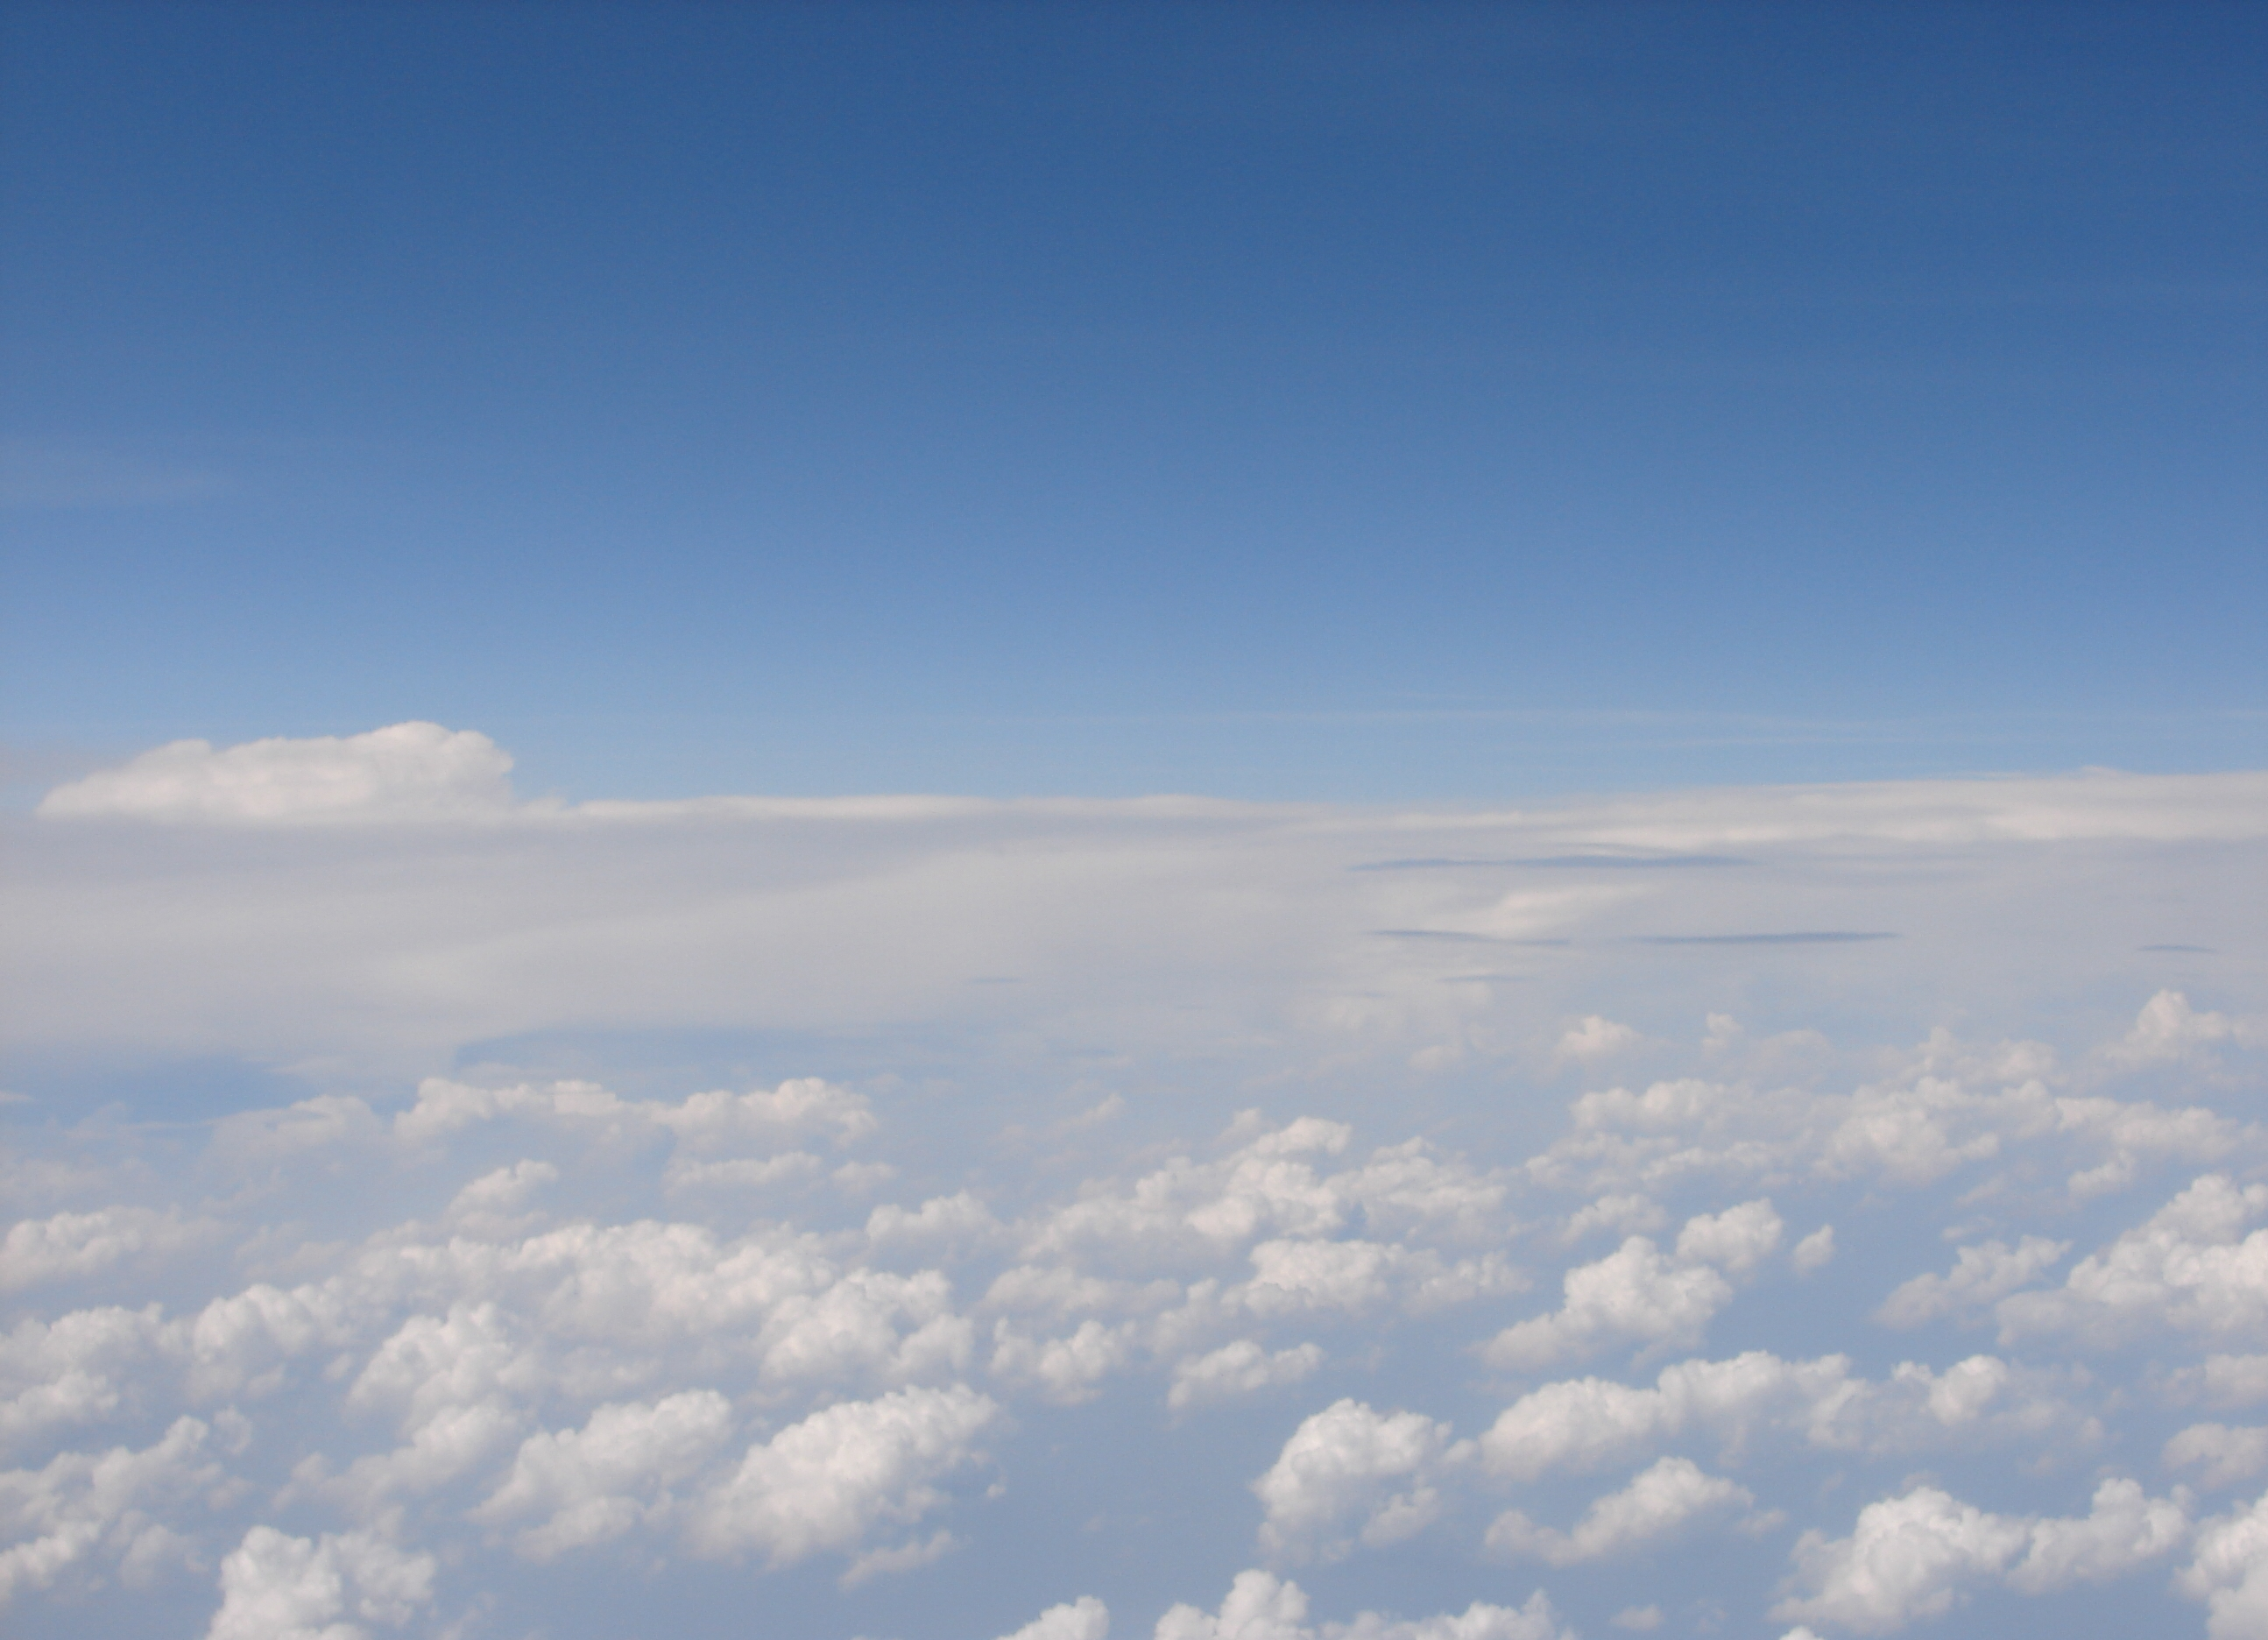 Airplane Above Puffy Clouds 08 by FantasyStock